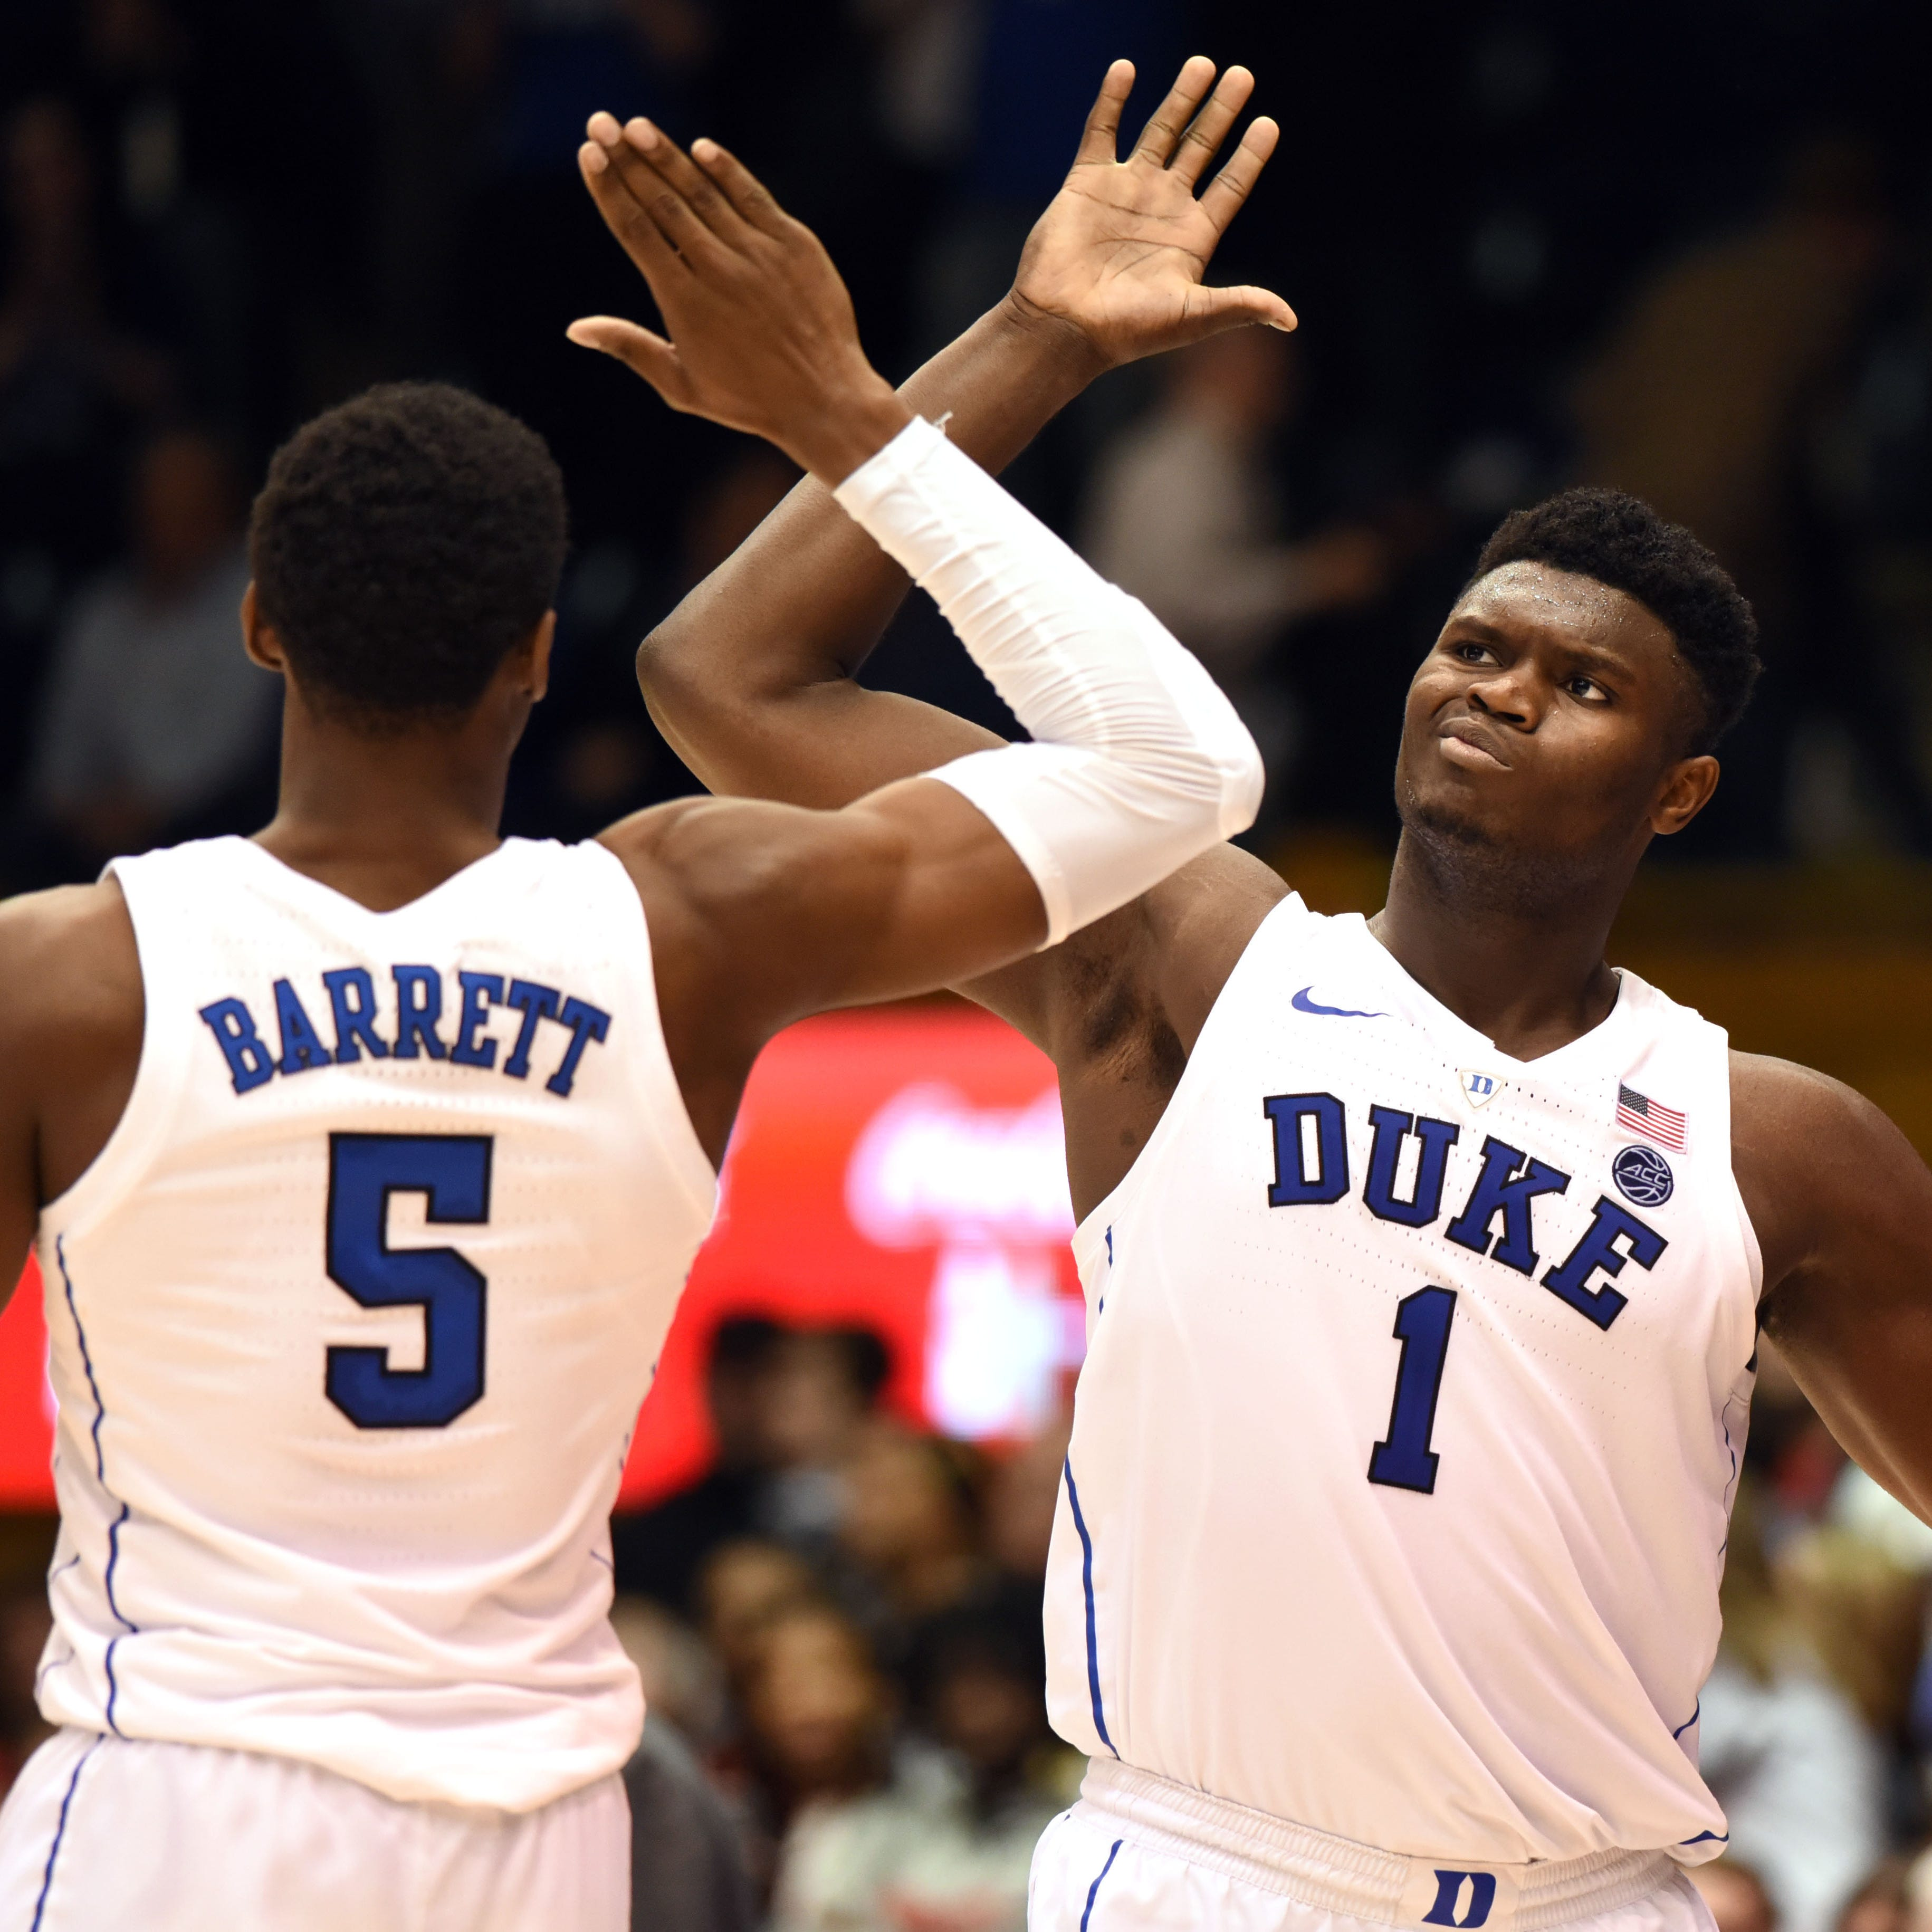 Game on! It's Michigan State vs. Duke, Zion Williamson in Elite Eight